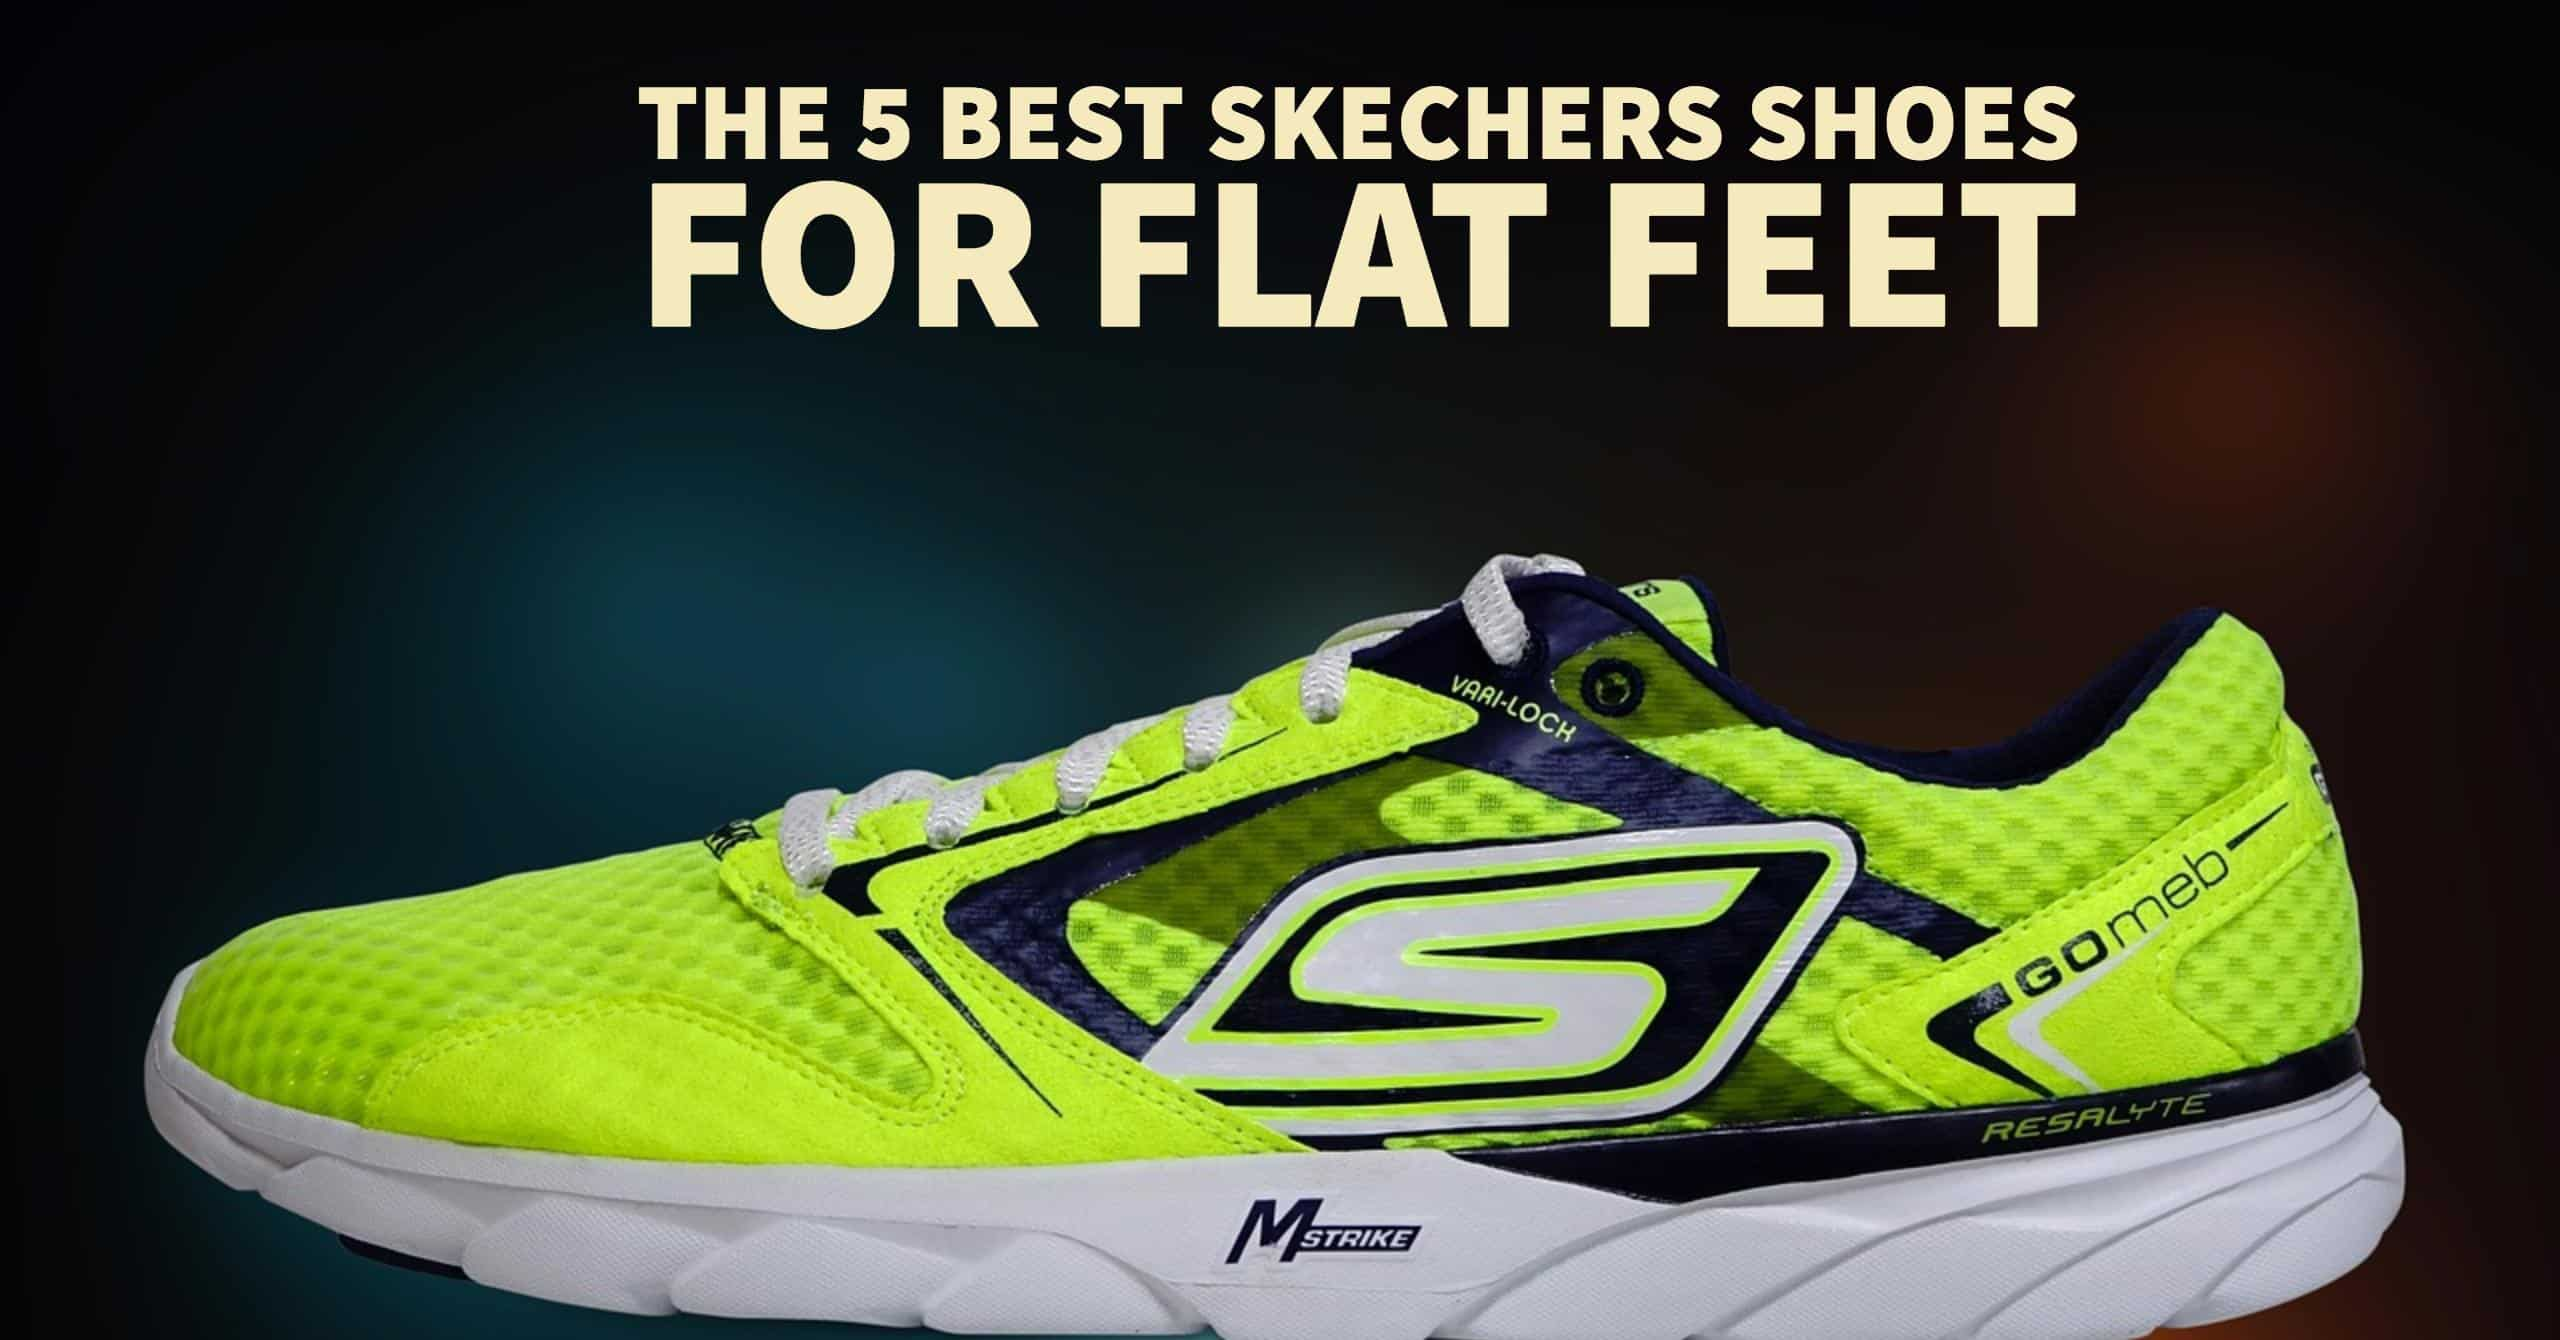 multiple colors wholesale sales hot product The 5 Best Skechers Shoes for Flat Feet - Train for a 5K.com